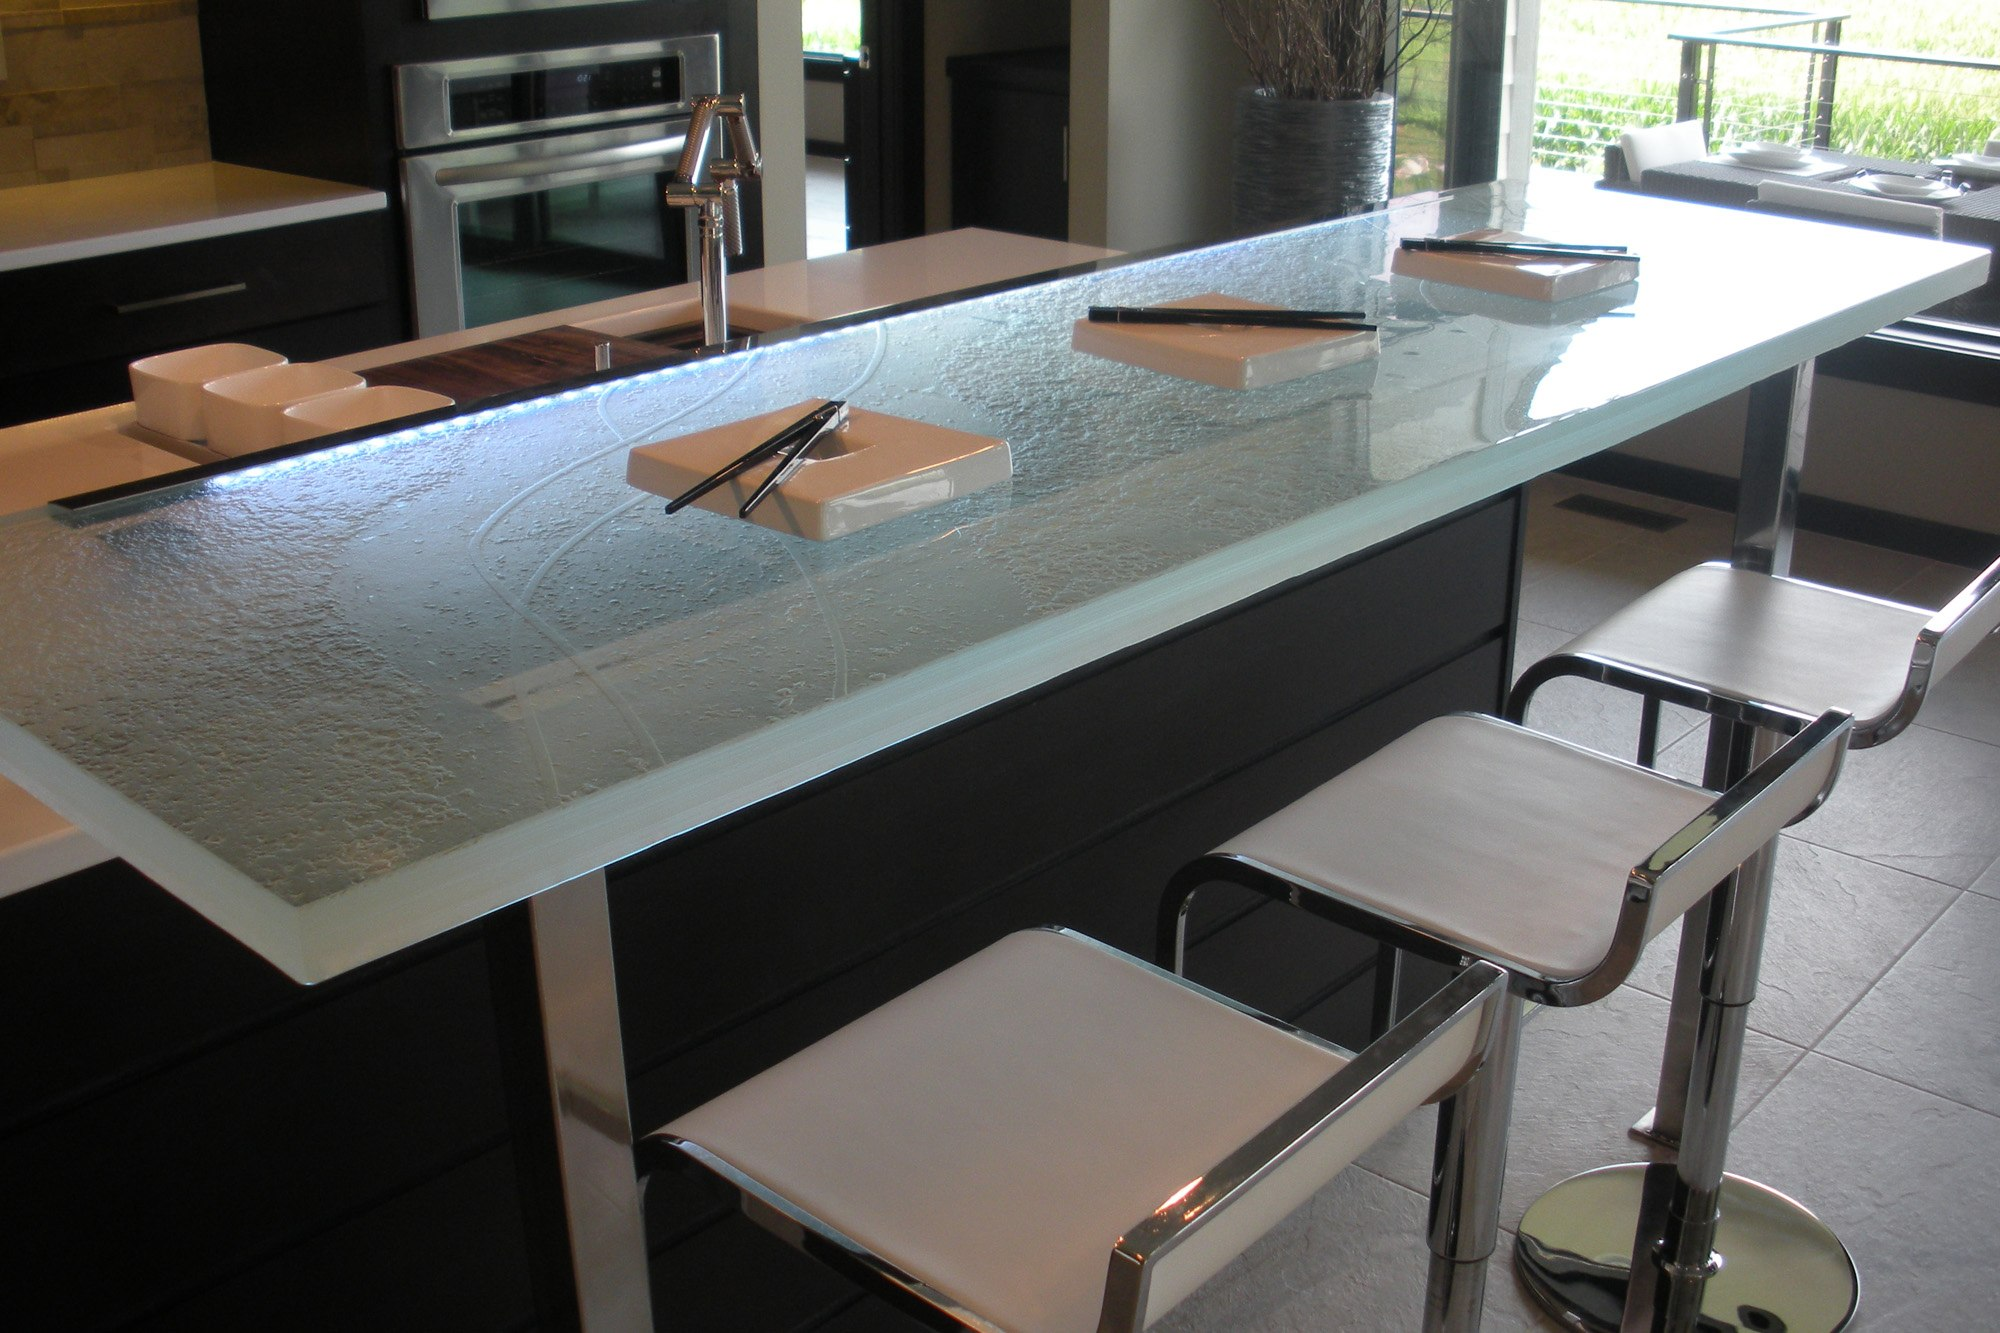 The Ultimate Luxury Touch For Your Kitchen Decor   Glass Countertops  Homesthetics (12)